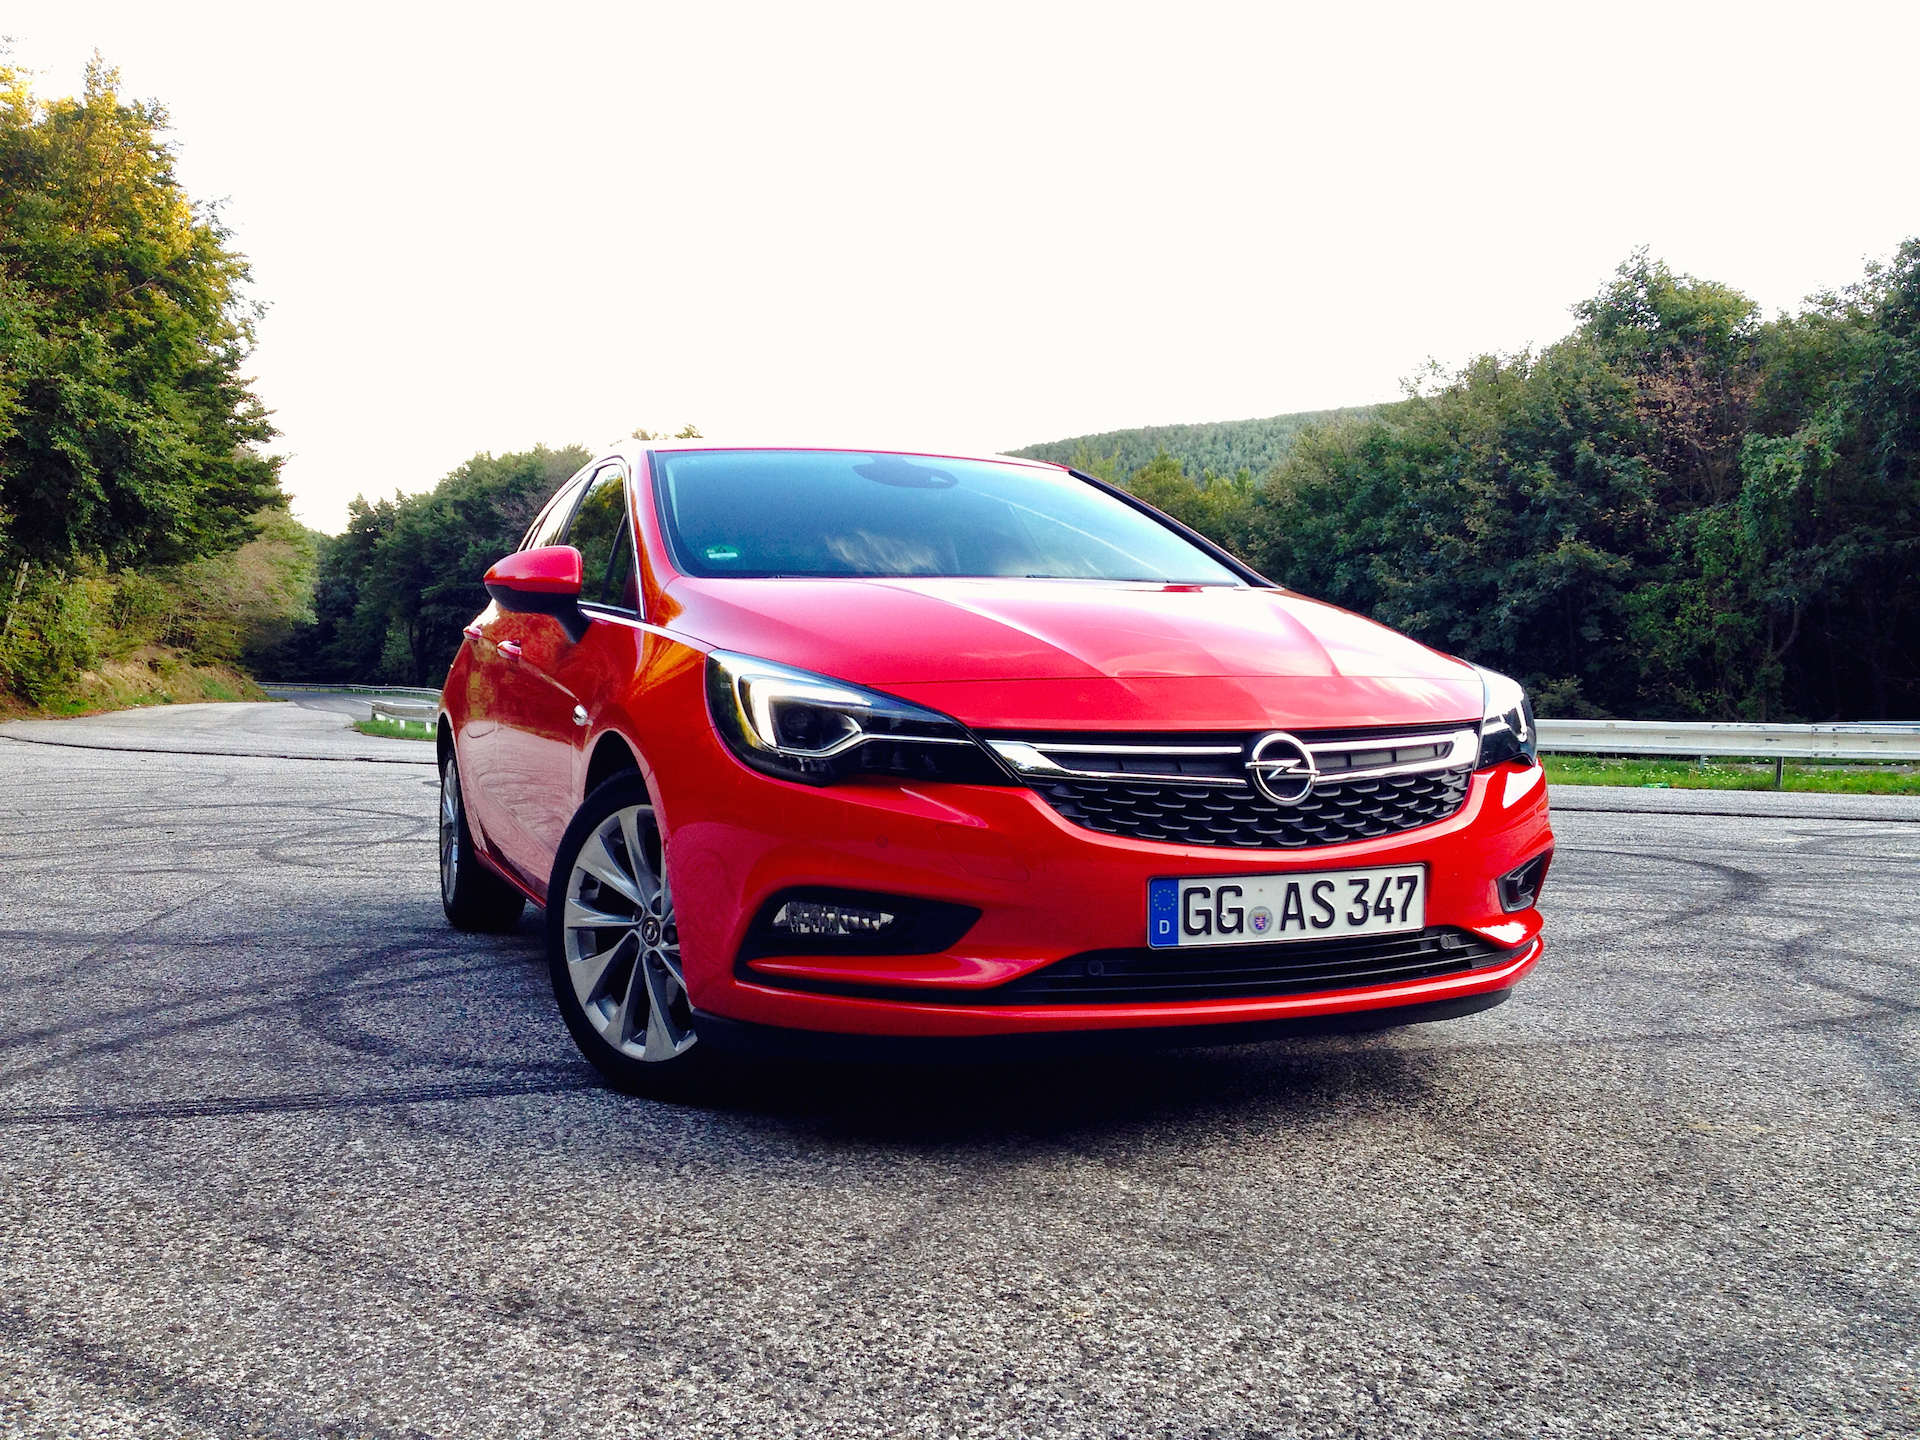 Opel Astra 2018 Sedan >> Opel Astra 1.6 CDTI acceleration - ThrottleChannel.com